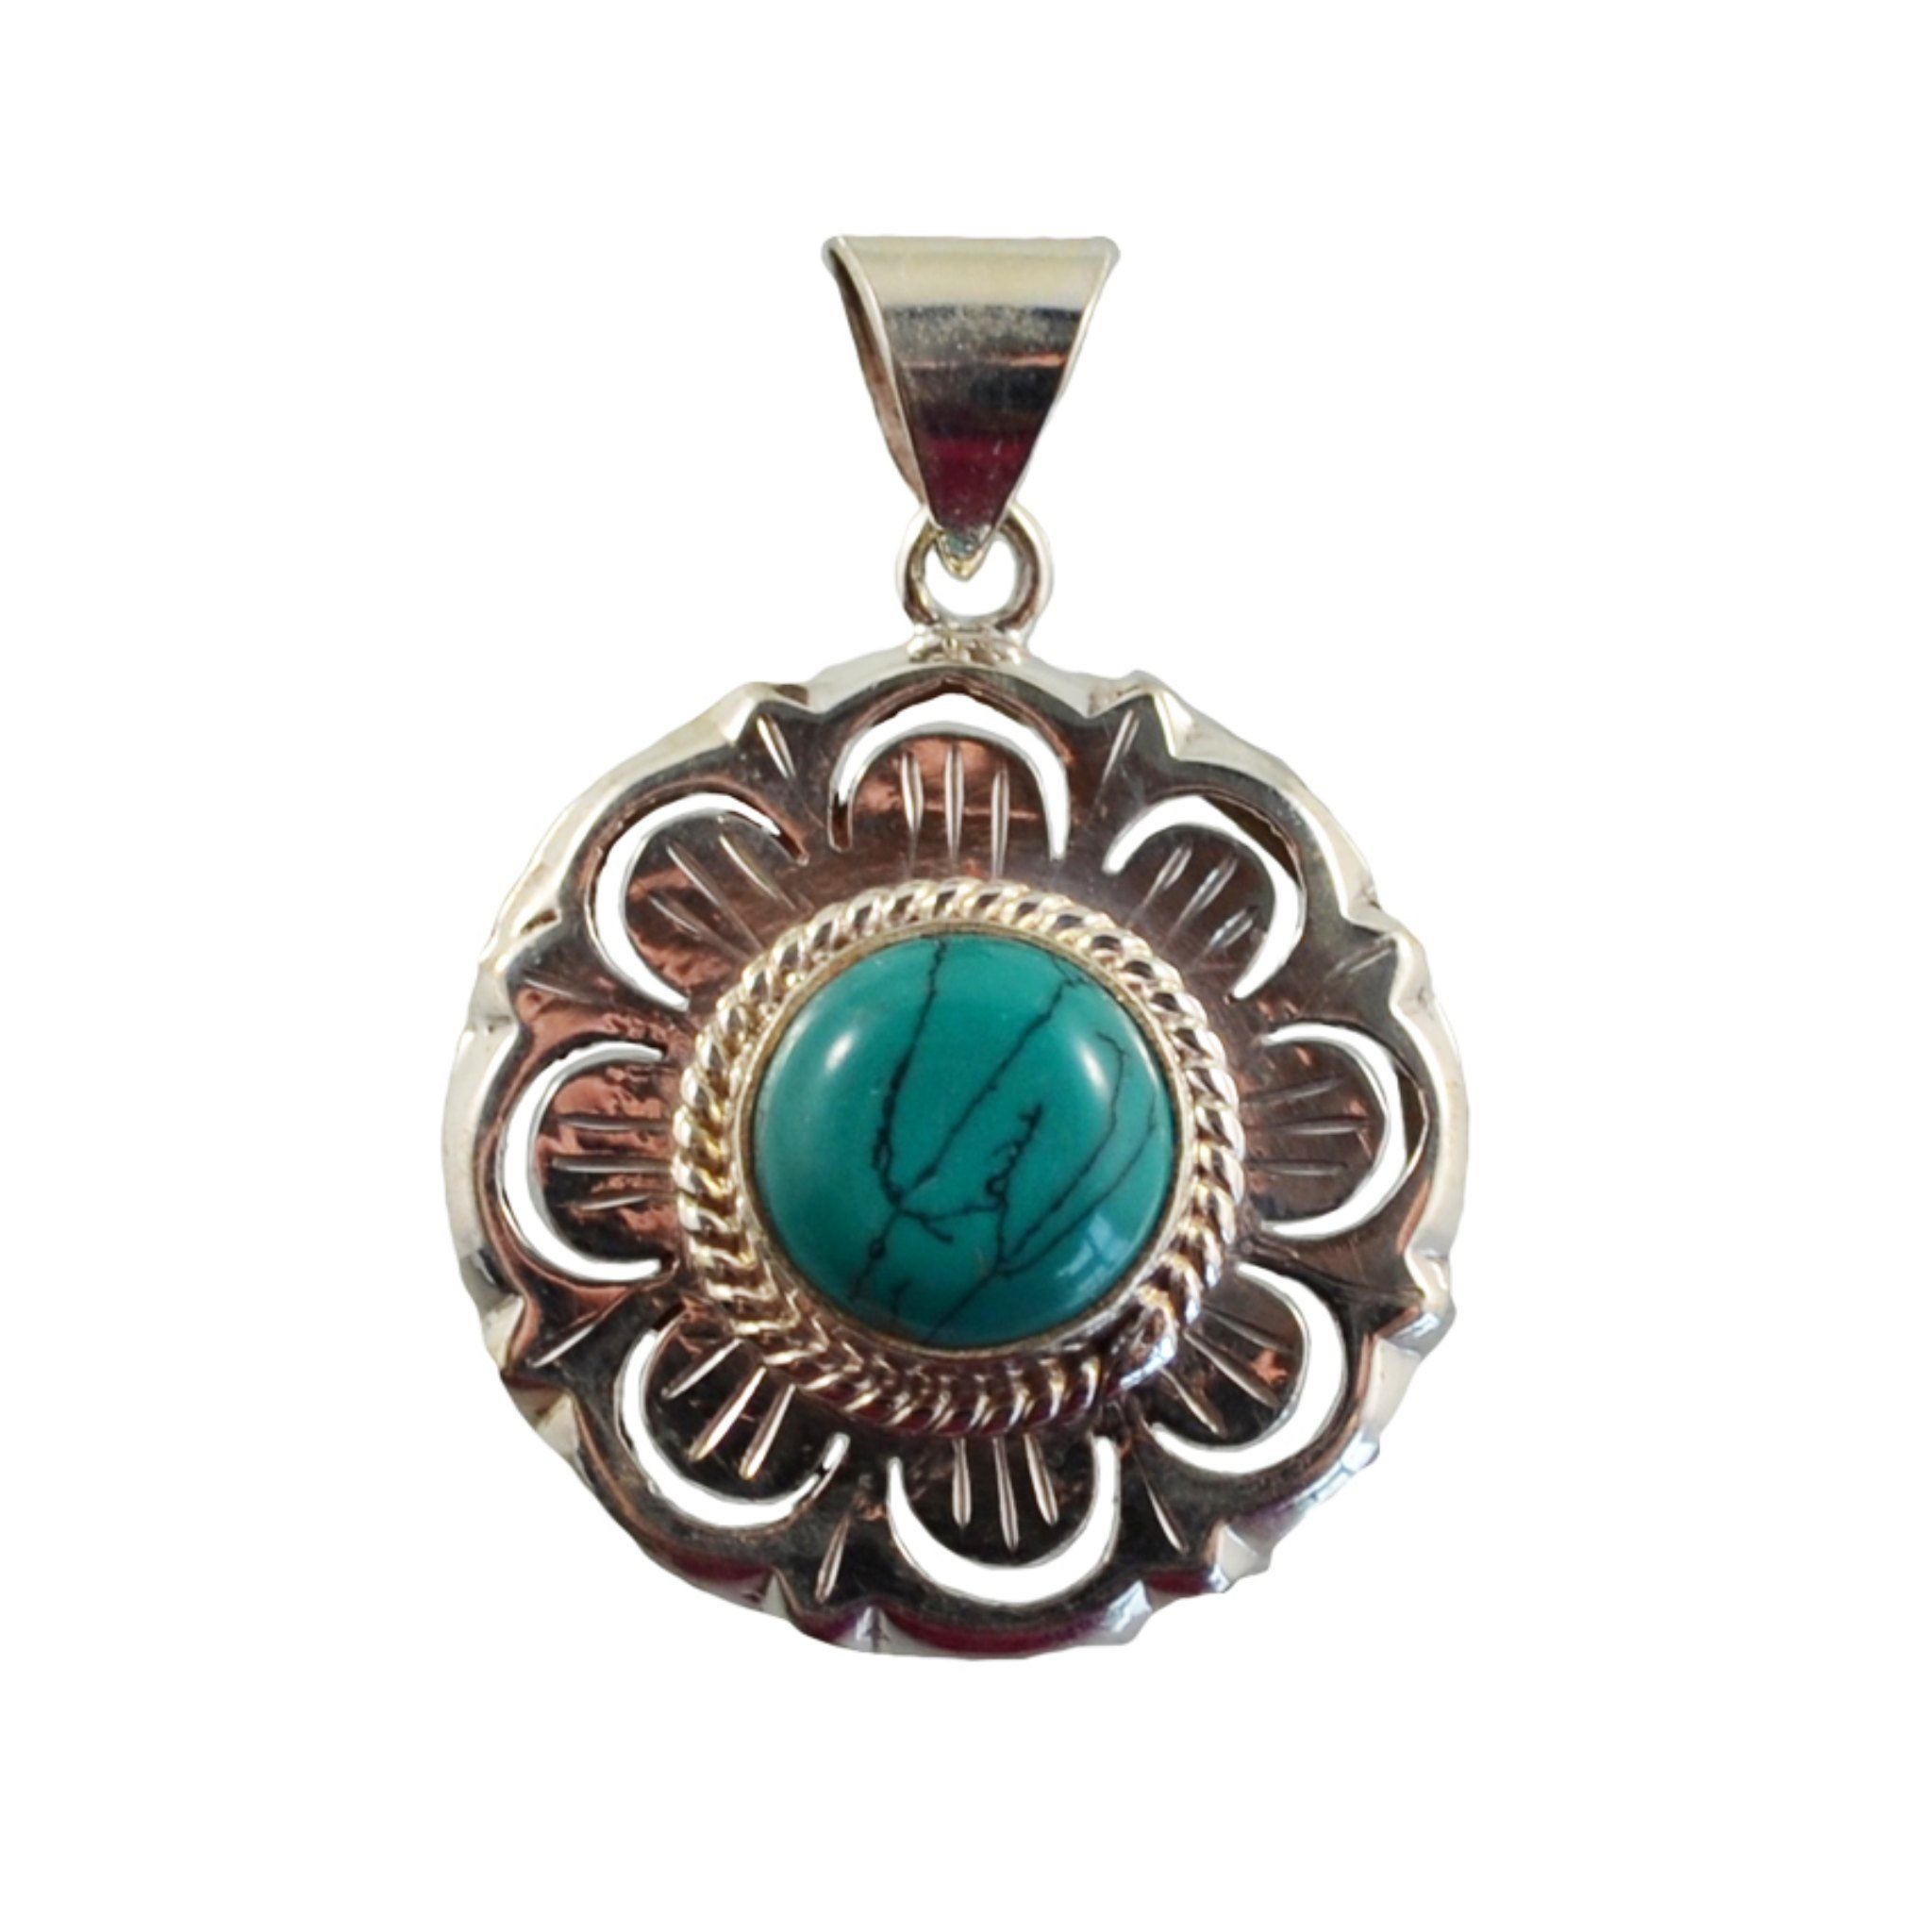 Teal Pendant with Petals Pendant Himal International